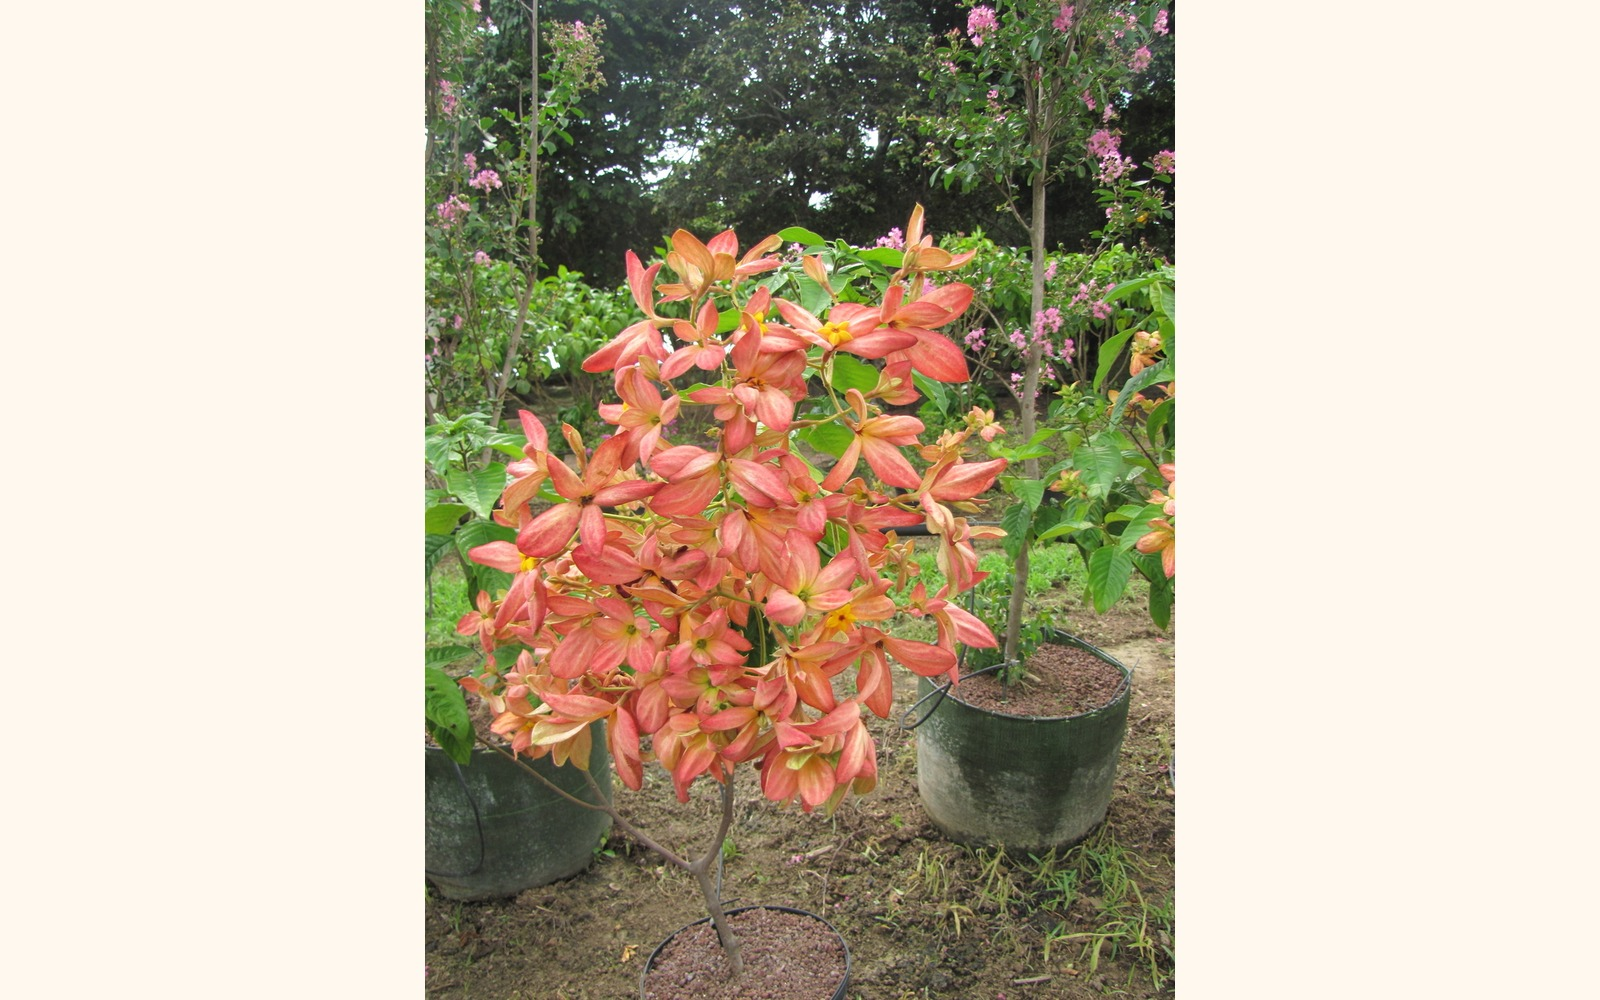 Slider_big_musseanda_anarajanda__mussaenda_erythrophylla__orange_flower